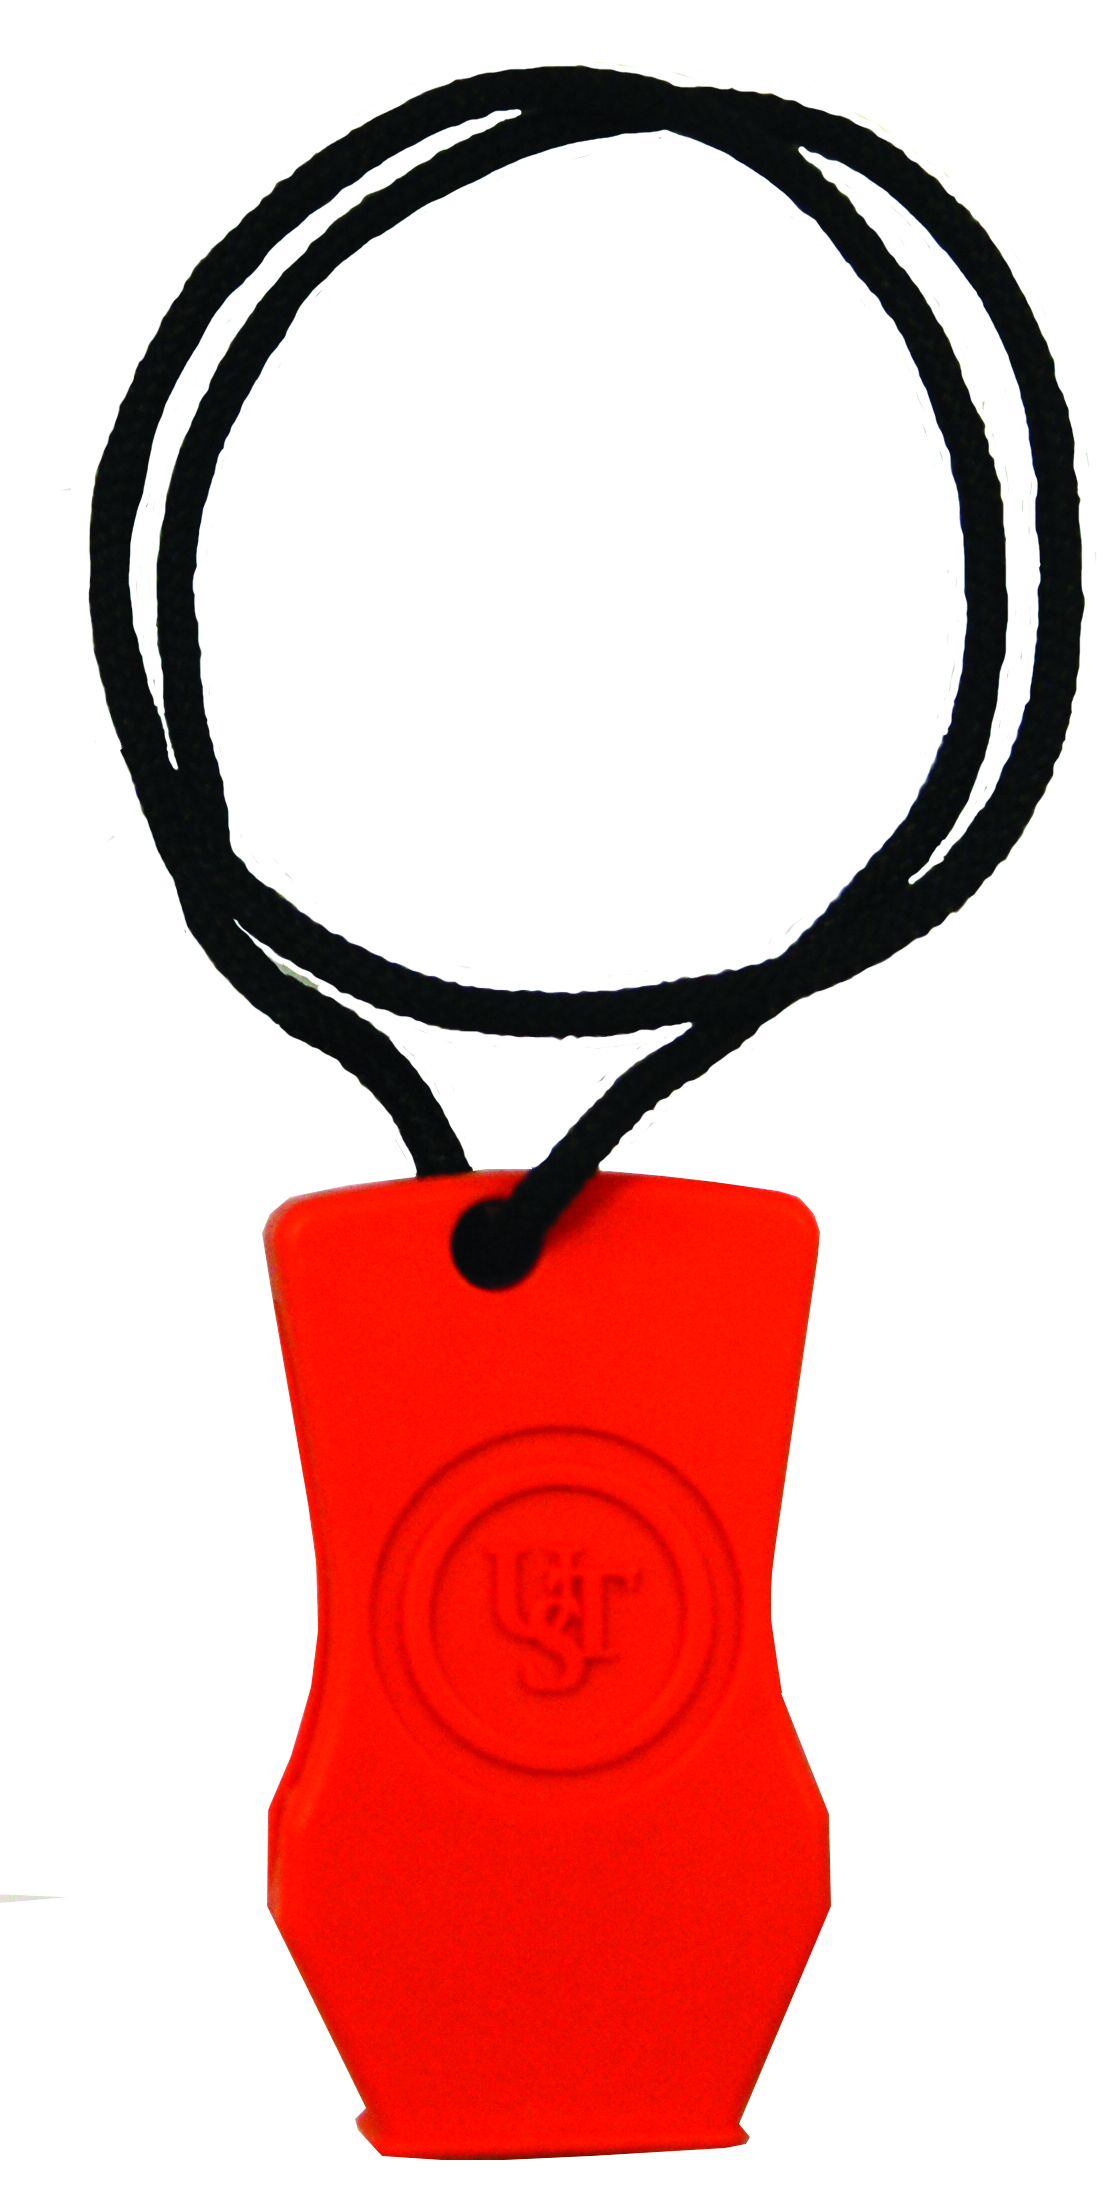 20-51143-08 - UST Brands JetScream Micro Whistle, Orange Blister